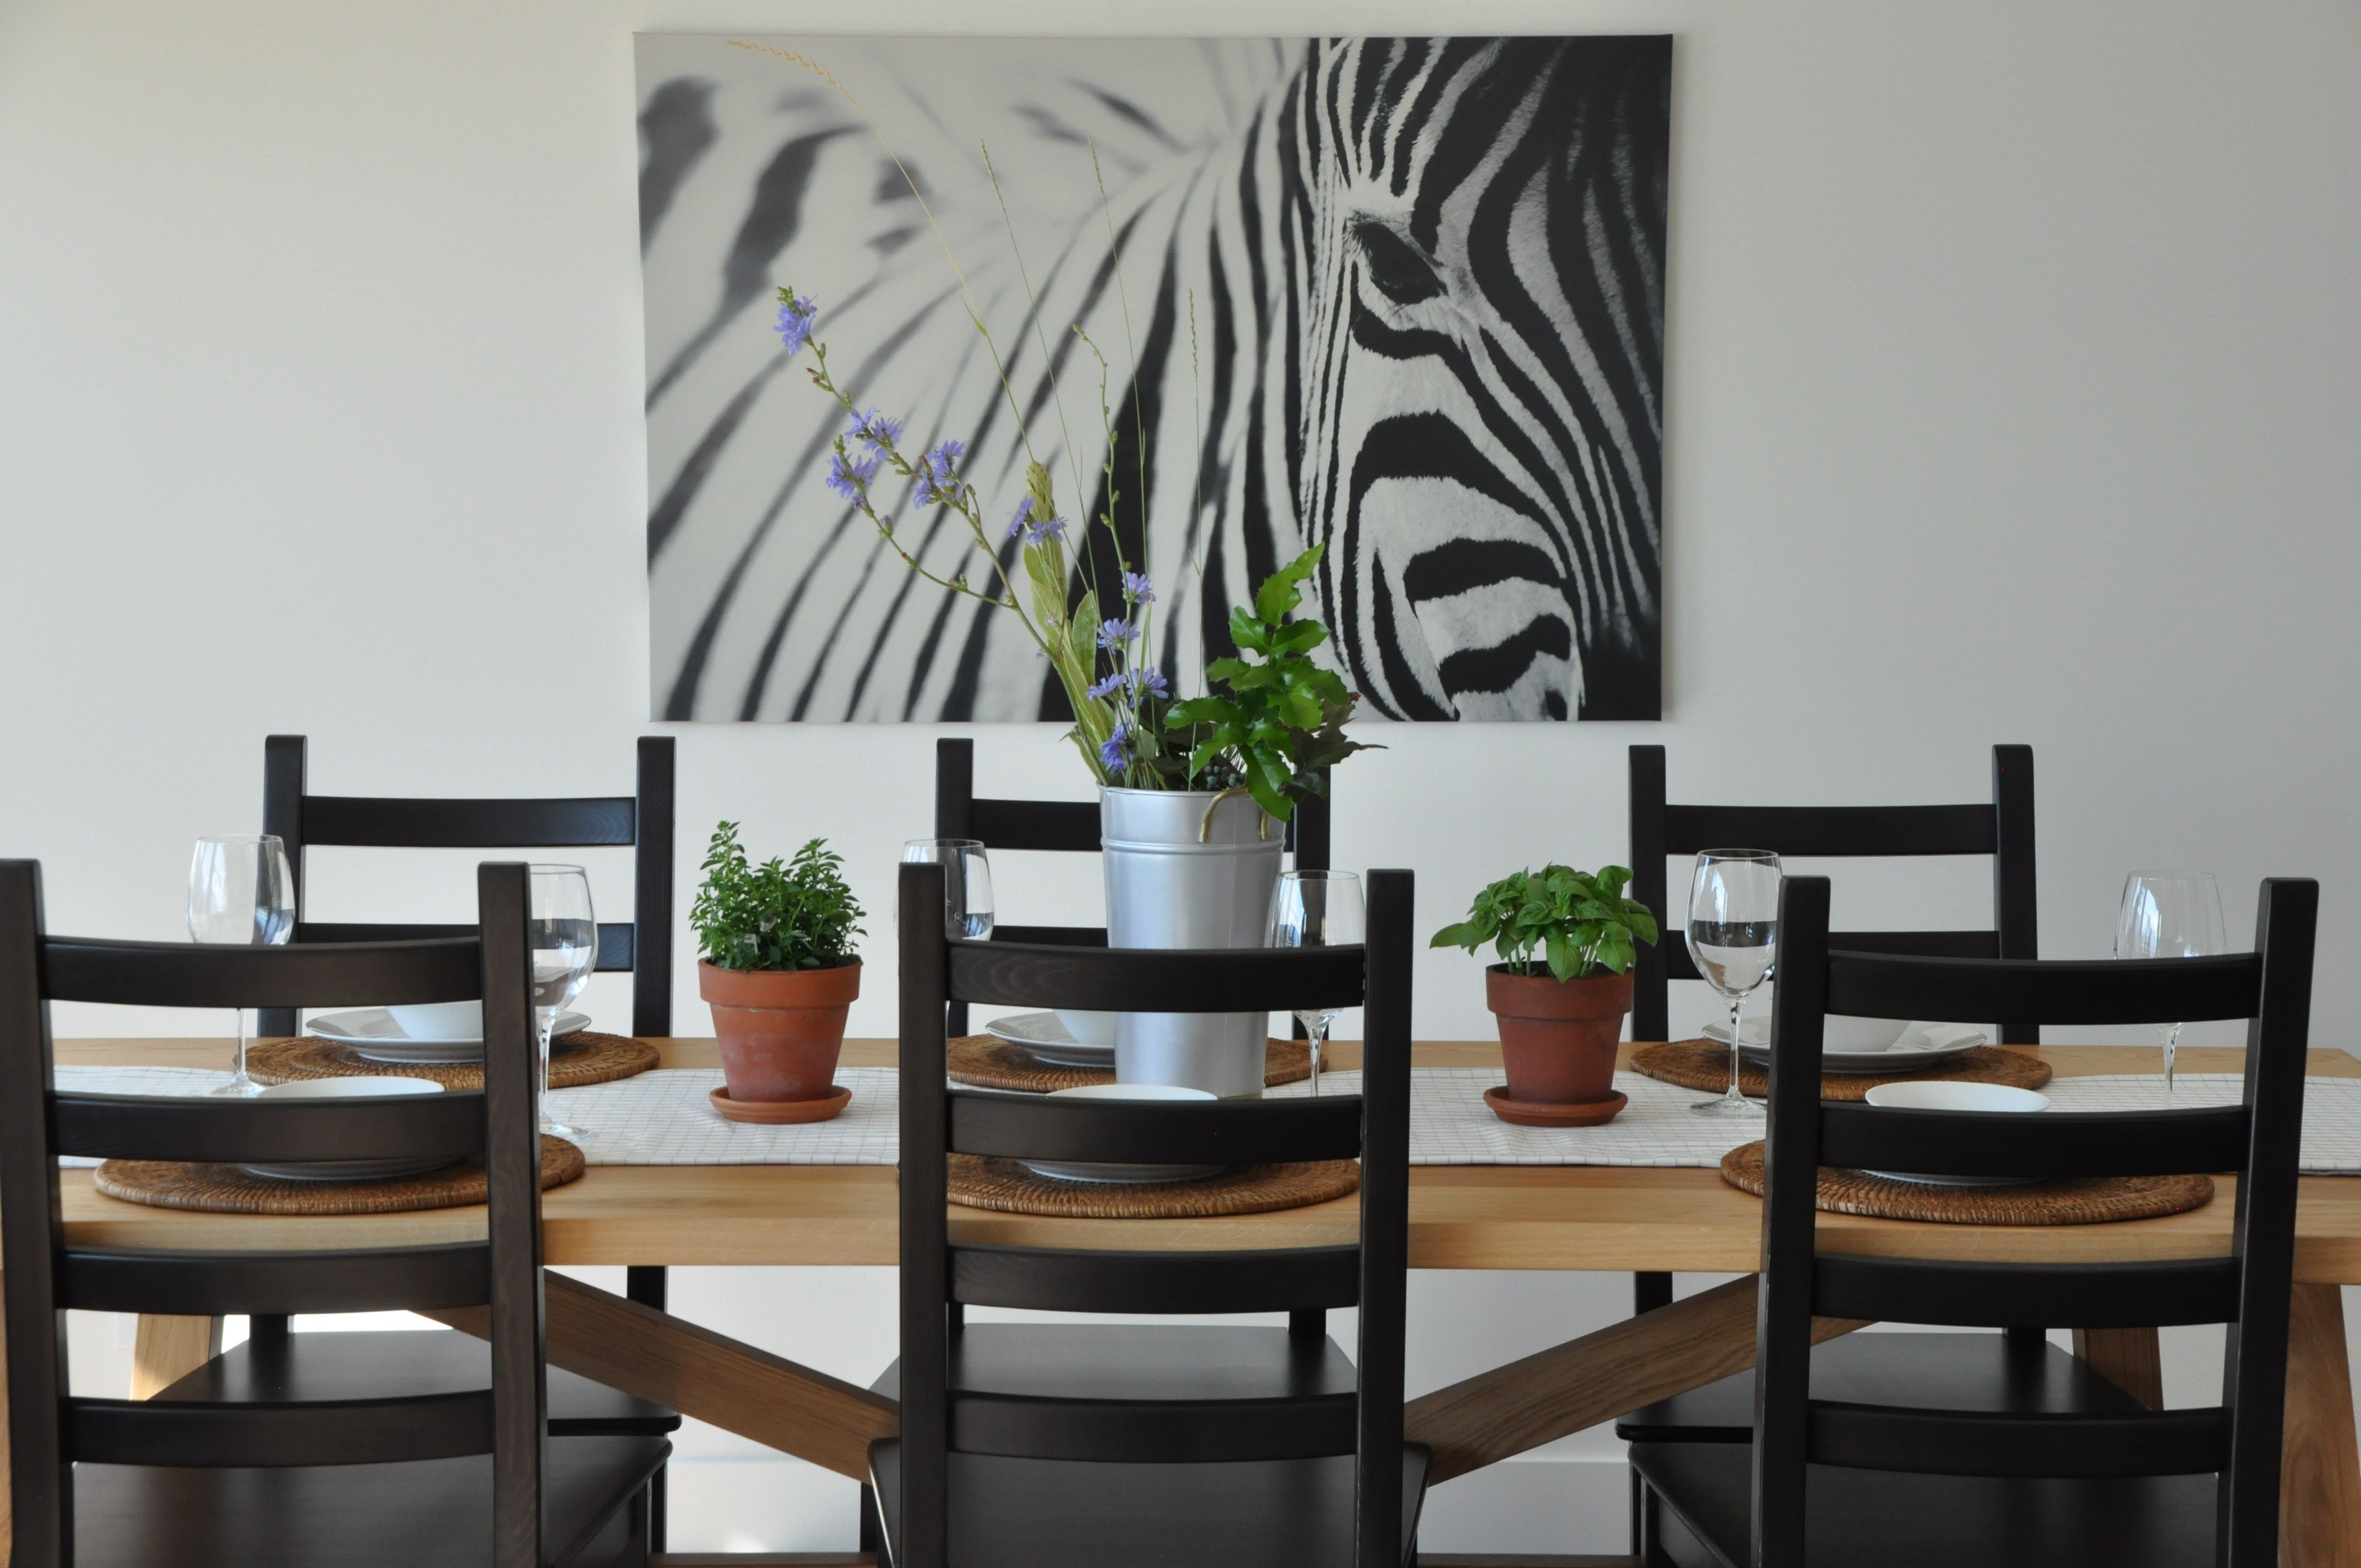 Zebra photo hanging above kitchen table